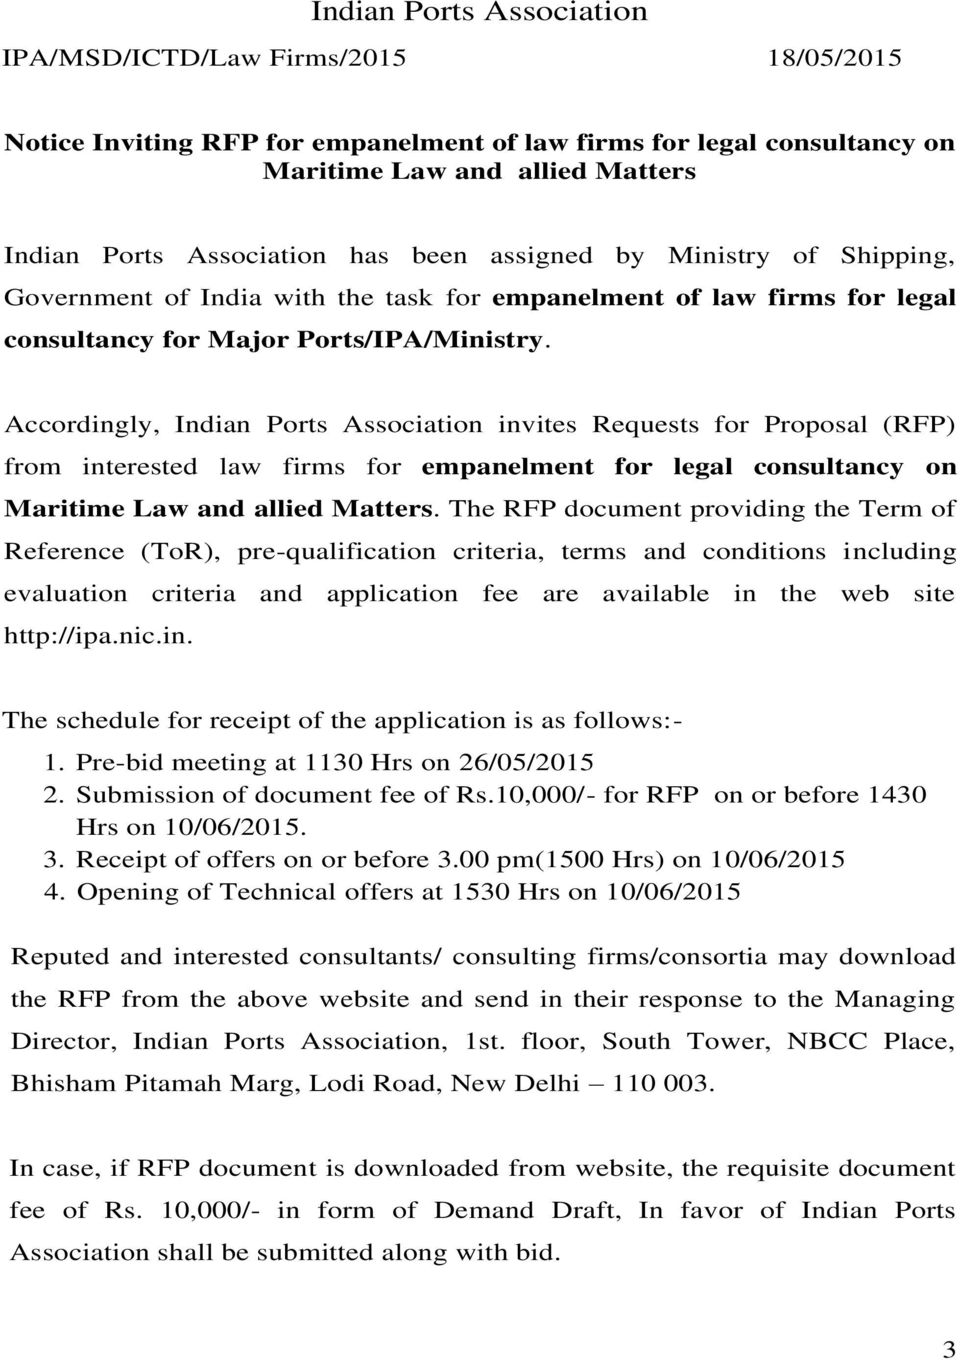 Accordingly, Indian Ports Association invites Requests for Proposal (RFP) from interested law firms for empanelment for legal consultancy on Maritime Law and allied Matters.